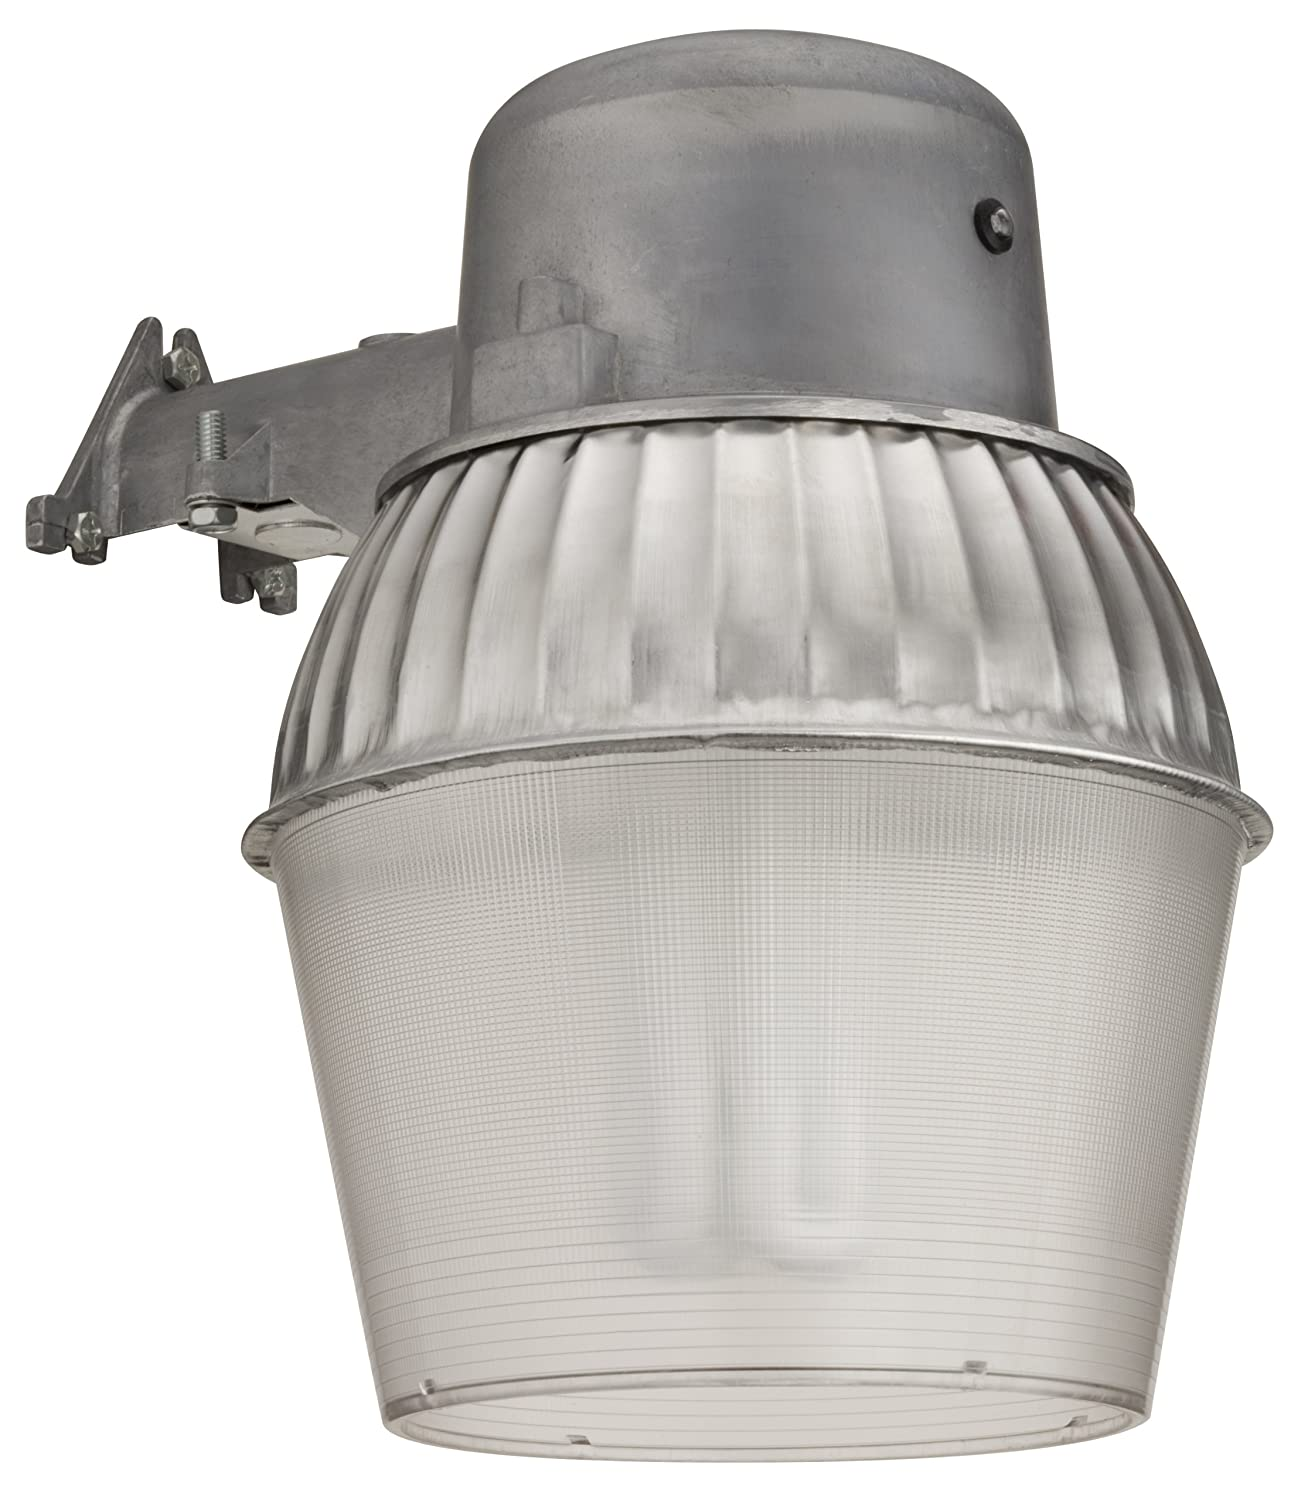 Lithonia lighting oals10 65f 120 p lp m4 standard outdoor area light lithonia lighting oals10 65f 120 p lp m4 standard outdoor area light with 65 watt compact fluorescent compact quad tube commercial street and area workwithnaturefo